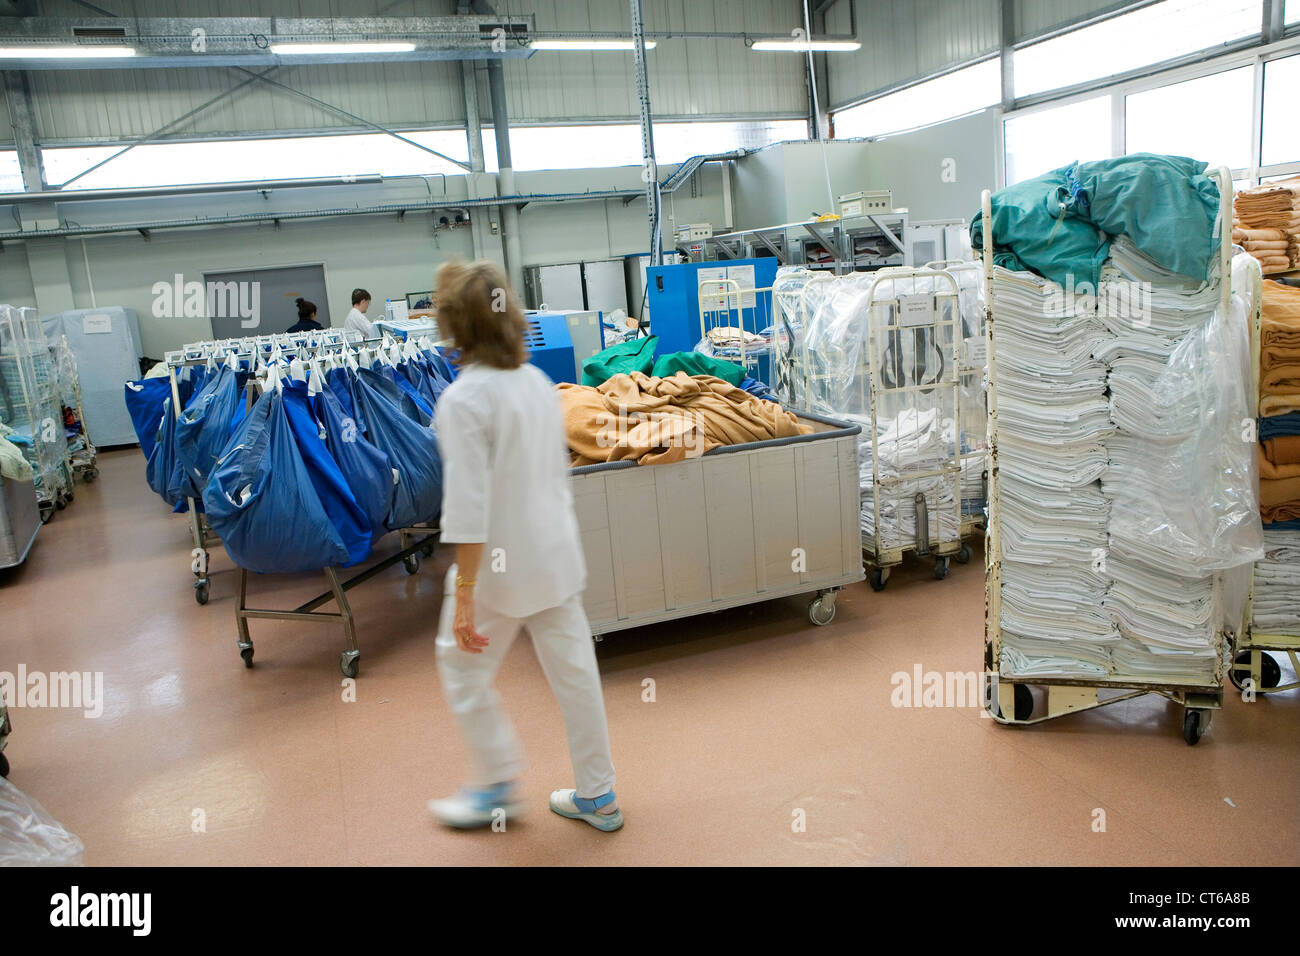 Laundry Workers Stock Photos & Laundry Workers Stock Images - Alamy